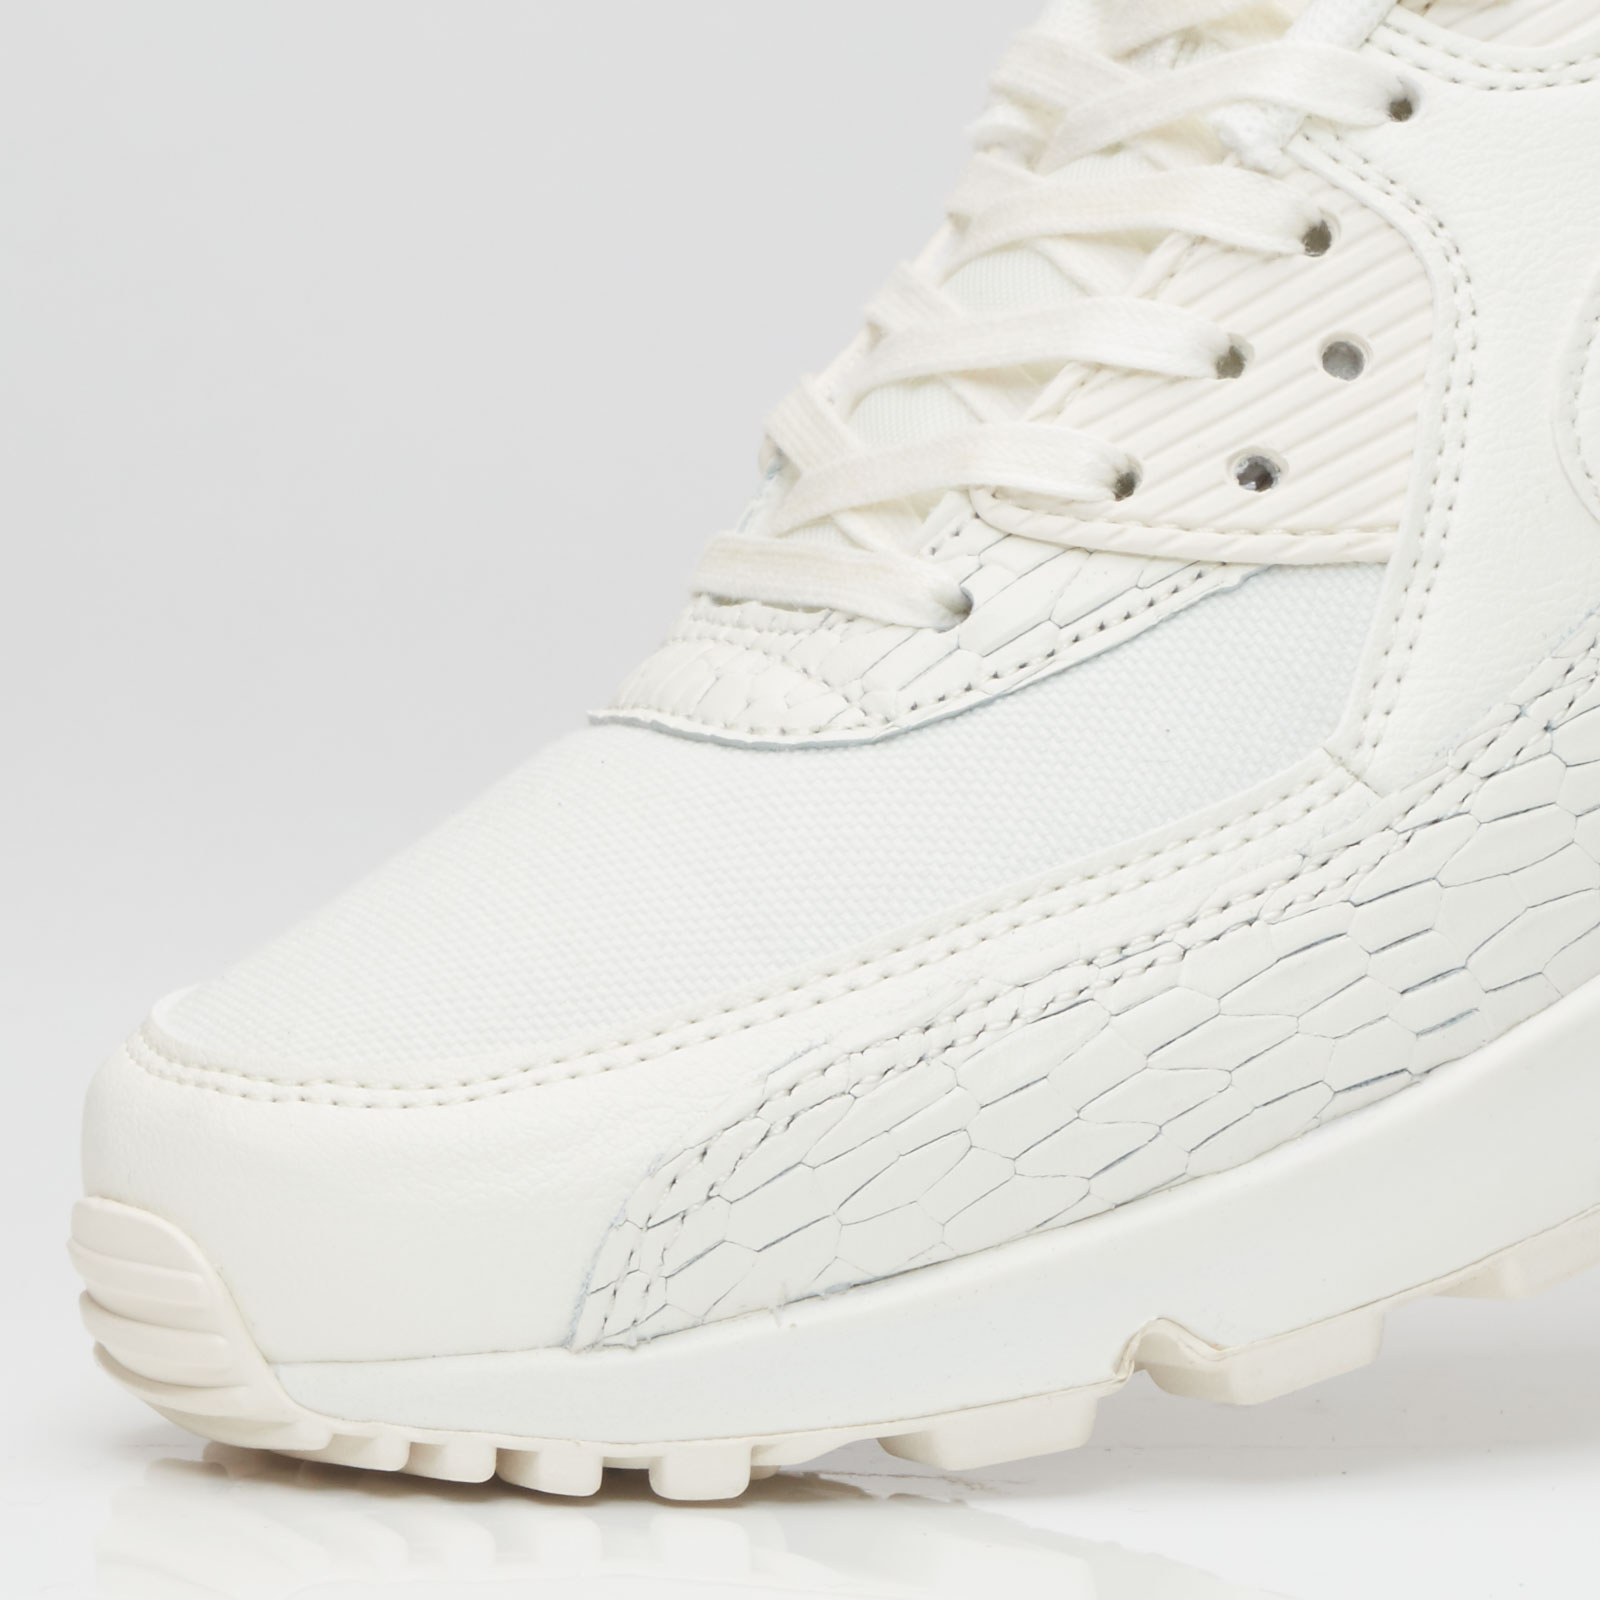 check out ad415 def44 Nike Sportswear Wmns Air Max 90 Premium Leather - 6. Close